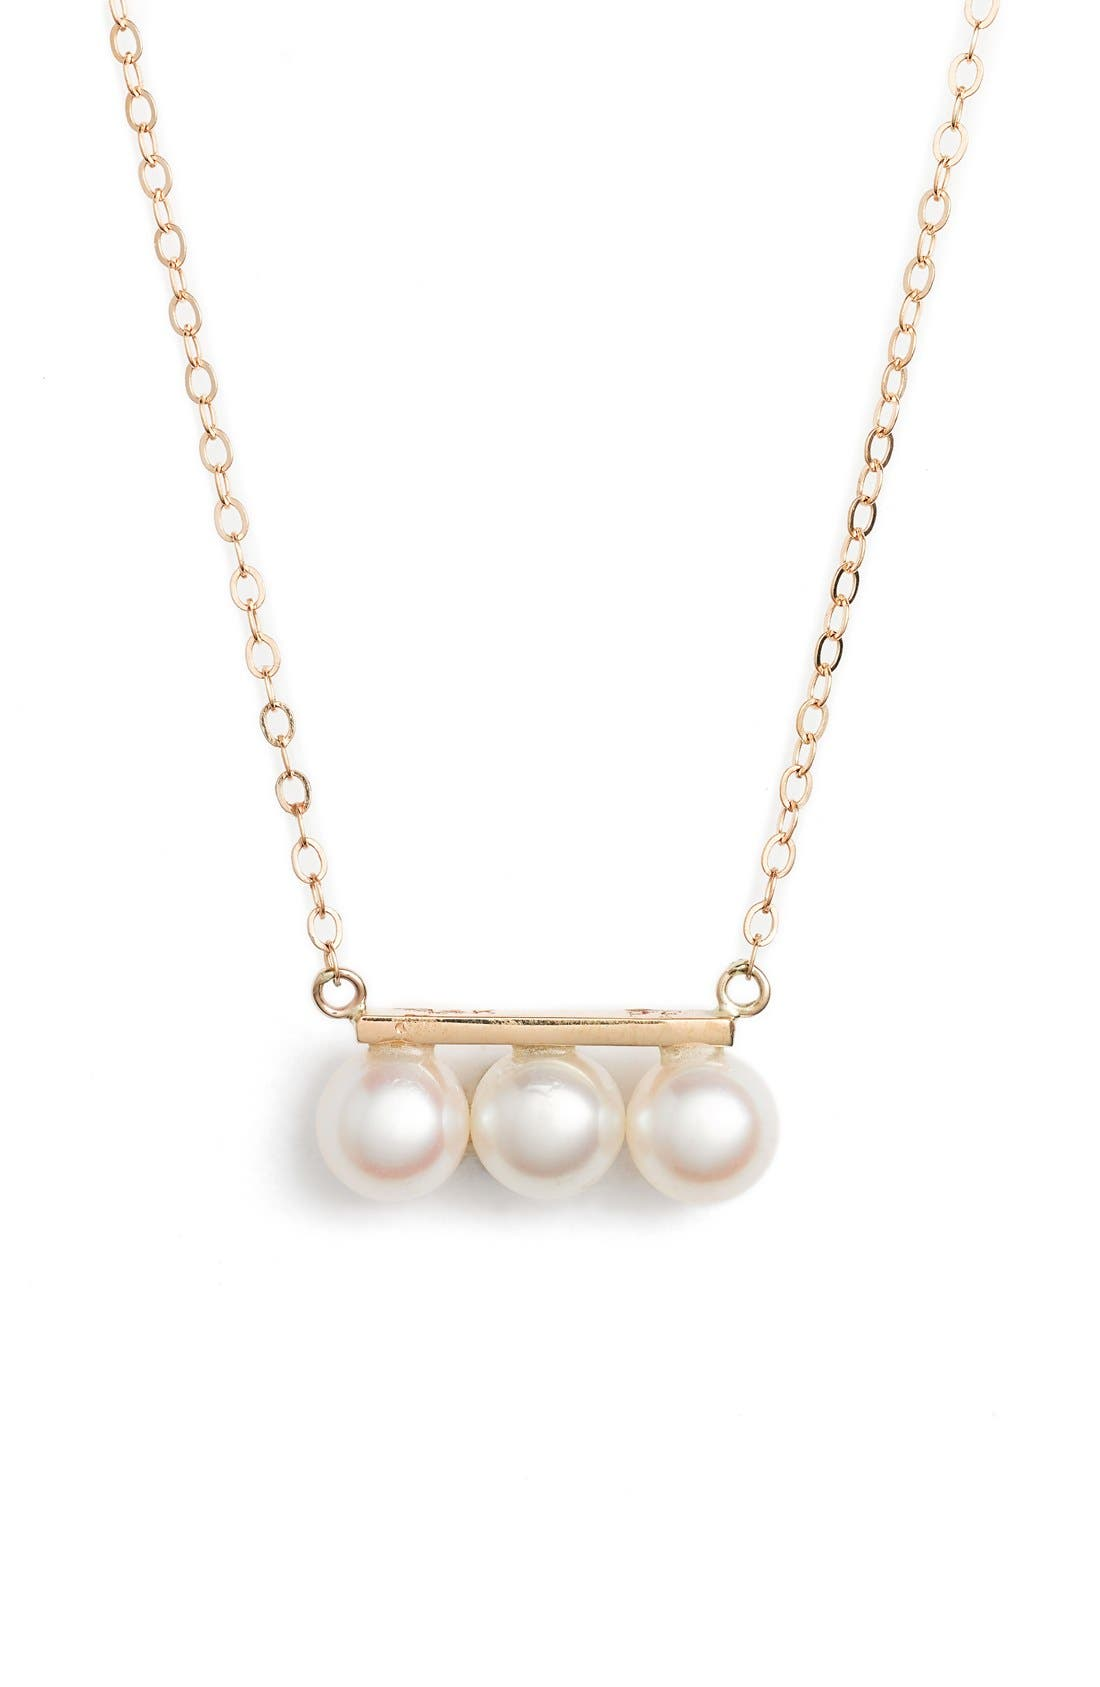 POPPY FINCH Triple Pearl Pendant Necklace